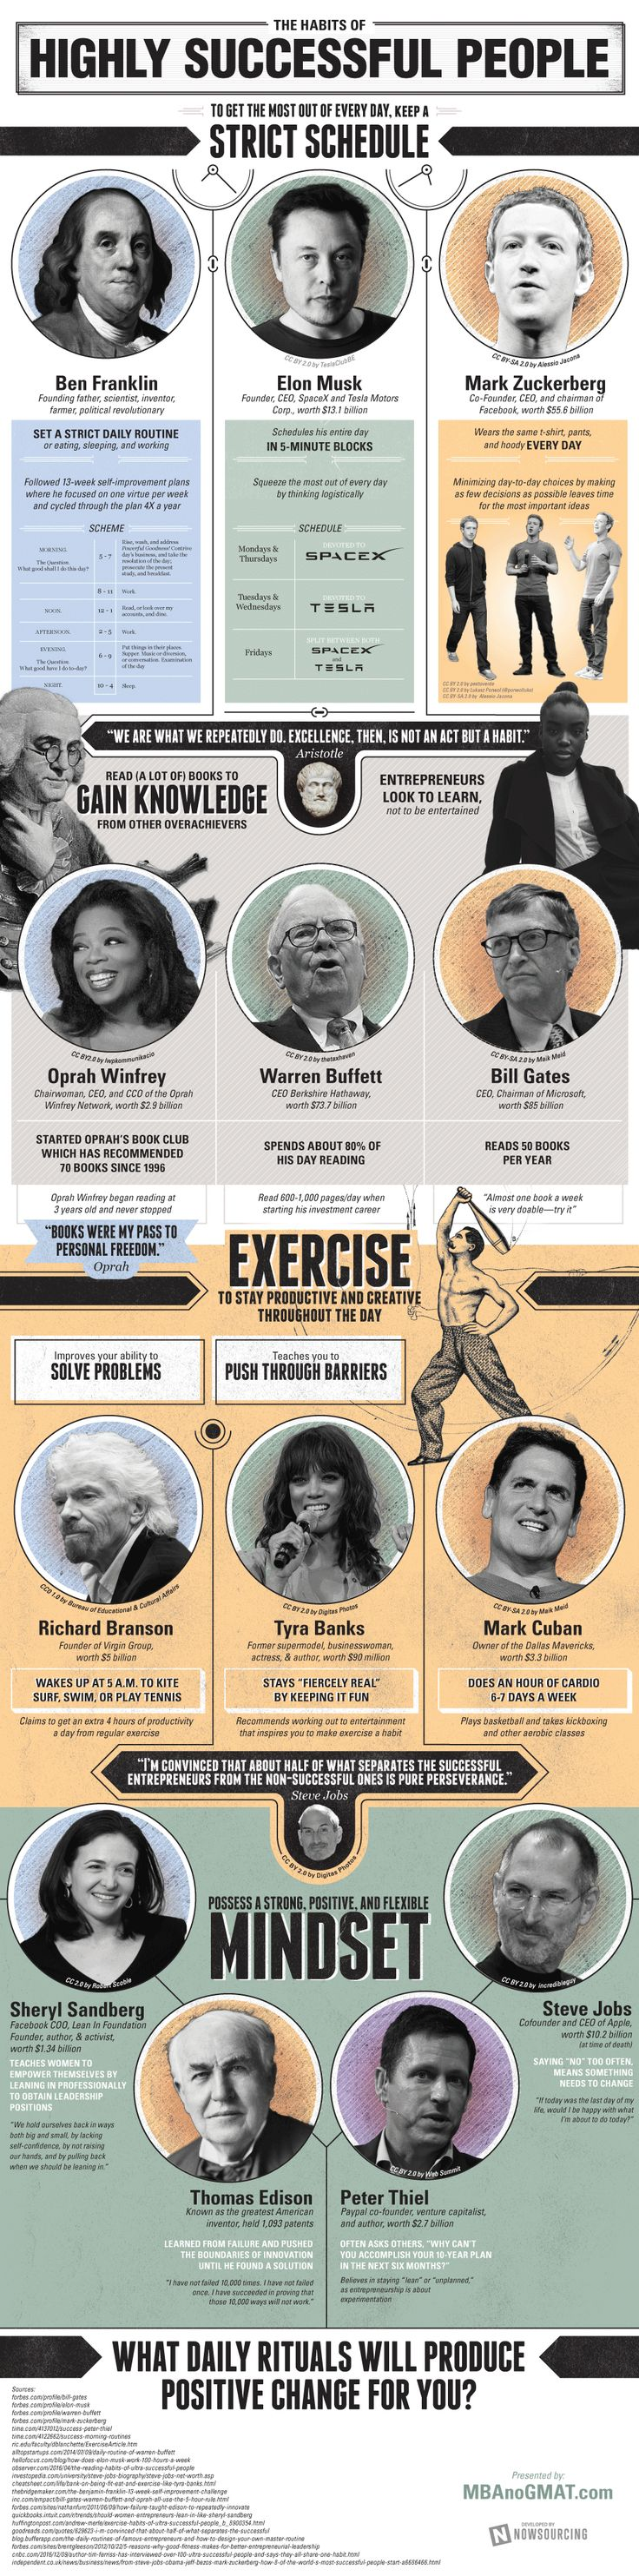 The Habits of Highly Successful Entrepreneurs: How do You Compare? [Infographic]